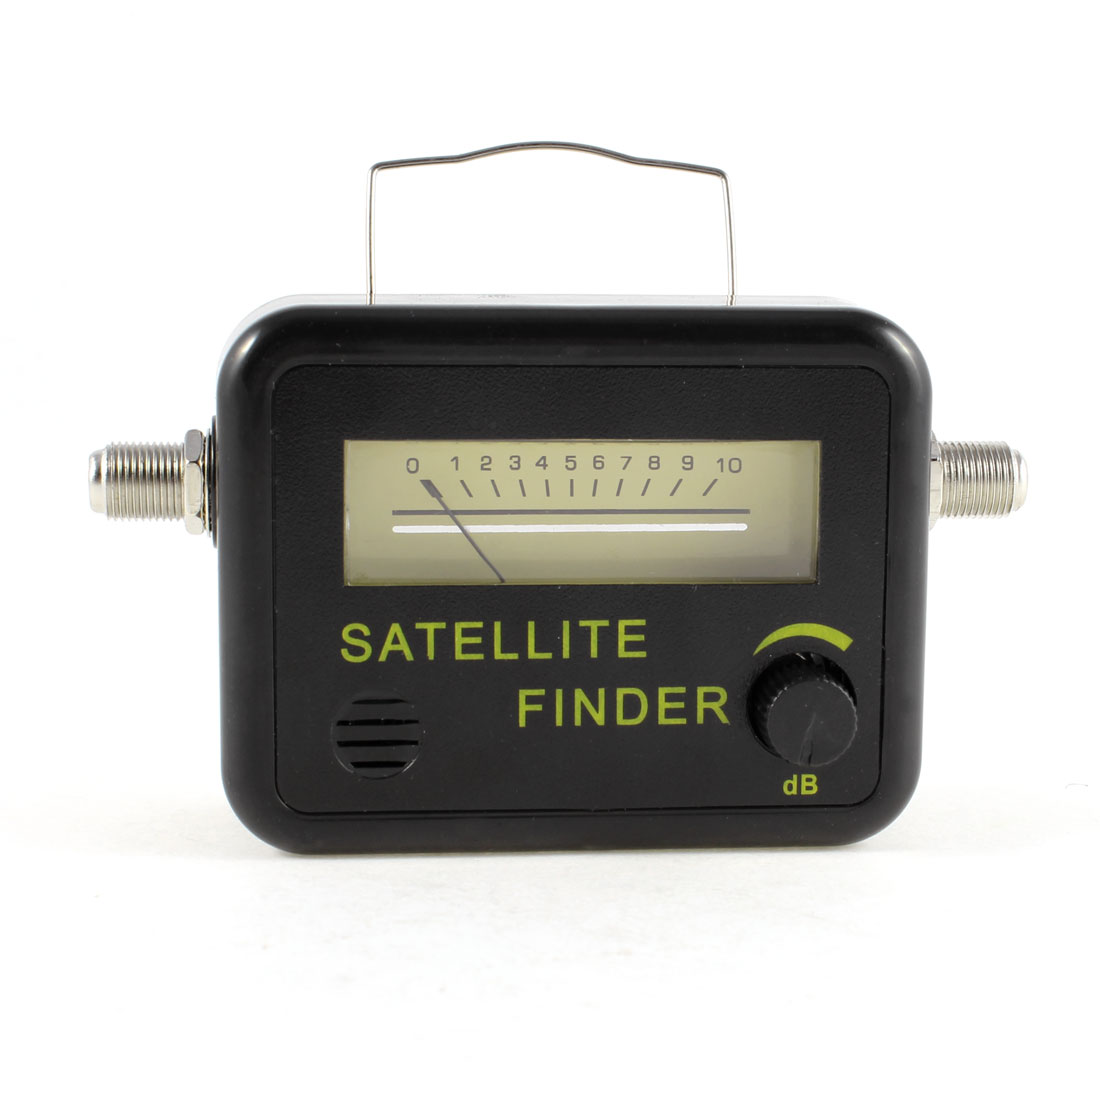 SF95 Satellite Finder Signal Satfinder Meter for Sat Directv Dish Network